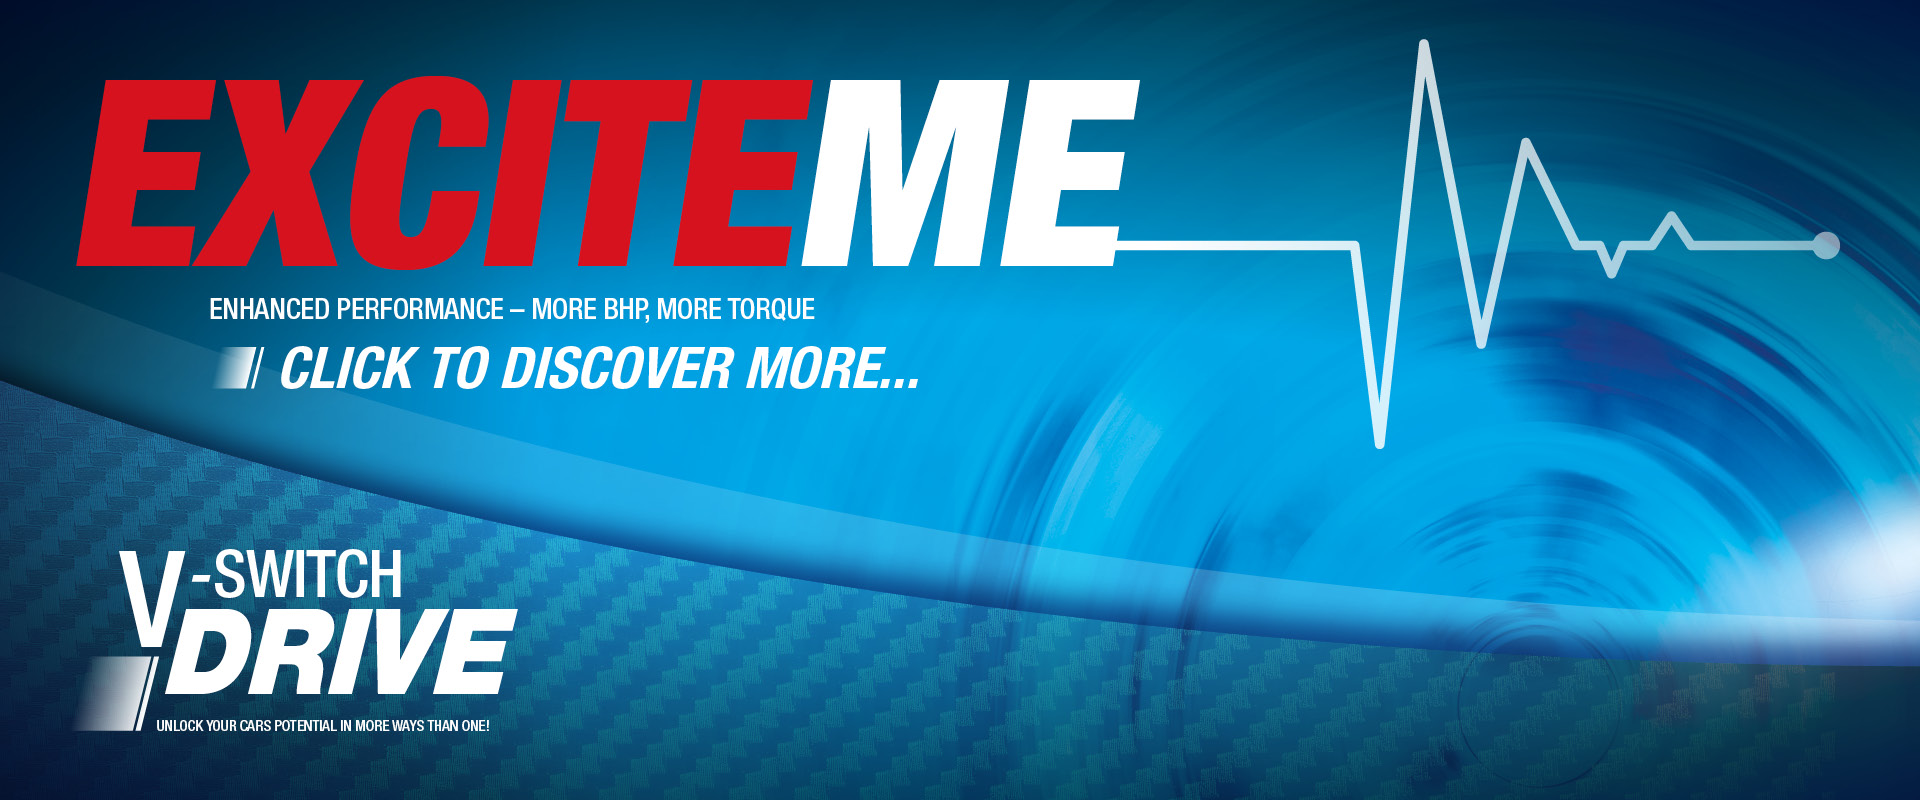 EXCITEME DRIVE SETTING...LEARN MORE